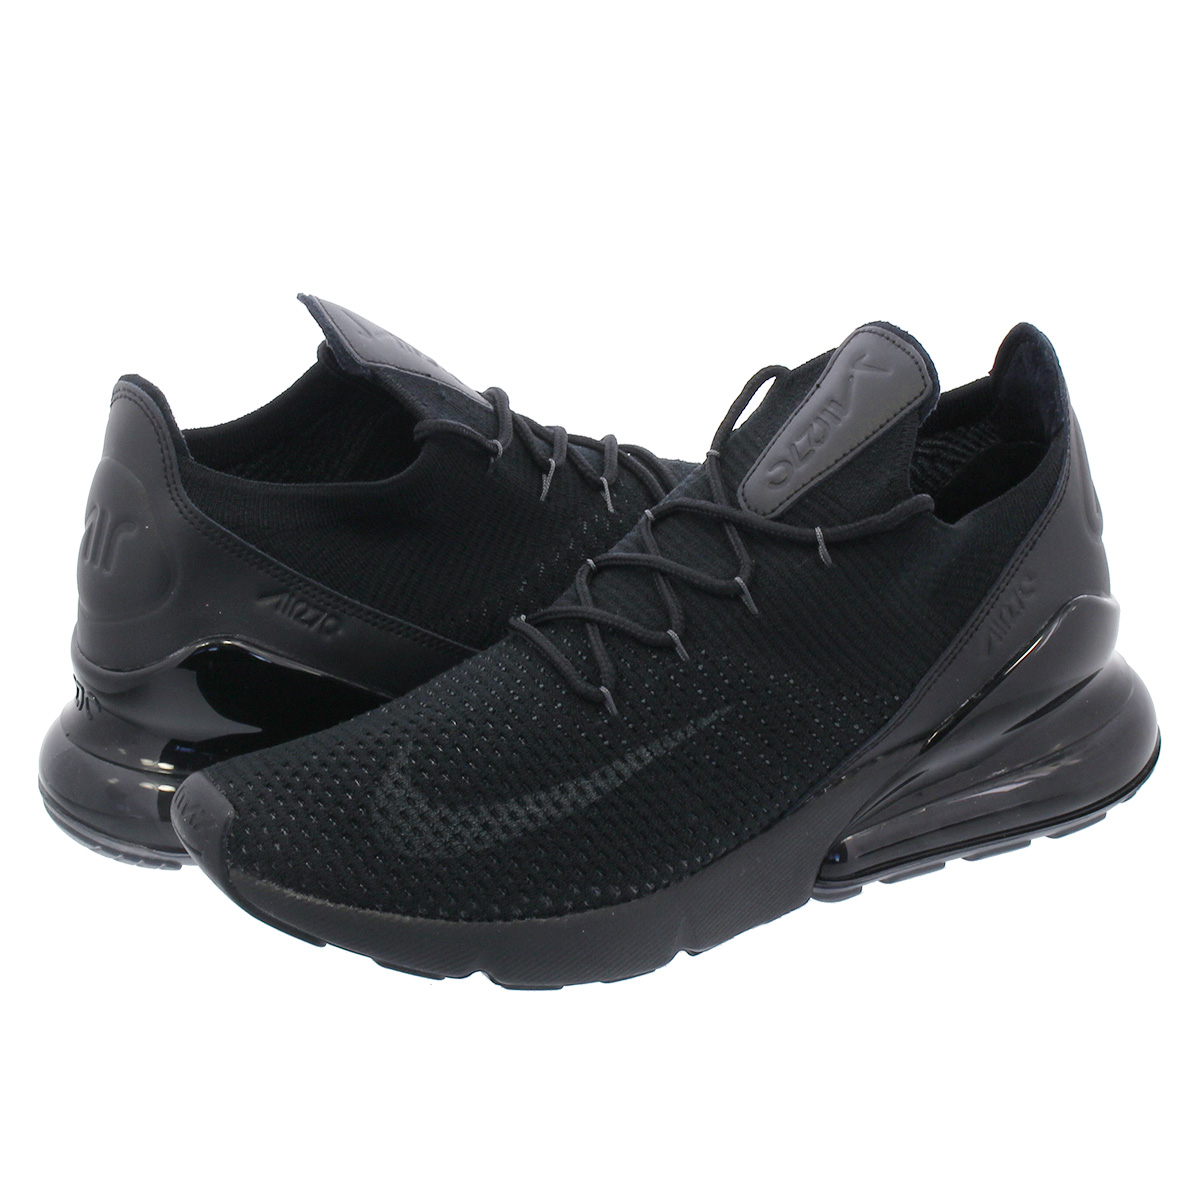 NIKE AIR MAX 270 FLYKNIT Kie Ney AMAX 270 fried food knit BLACKANTHRACITE ao1023 005